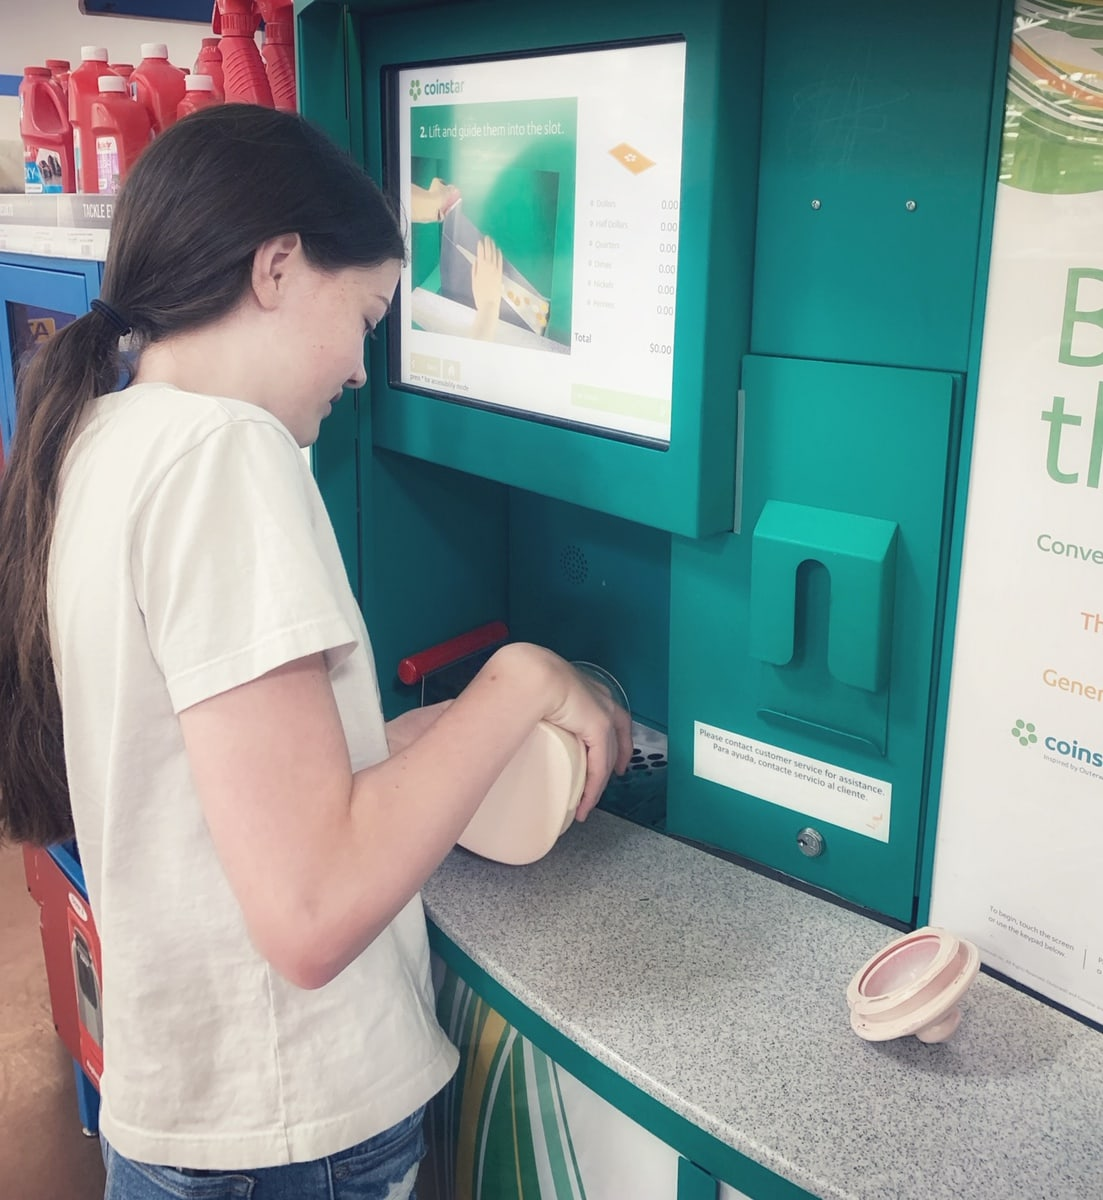 sharing how does Coinstar work